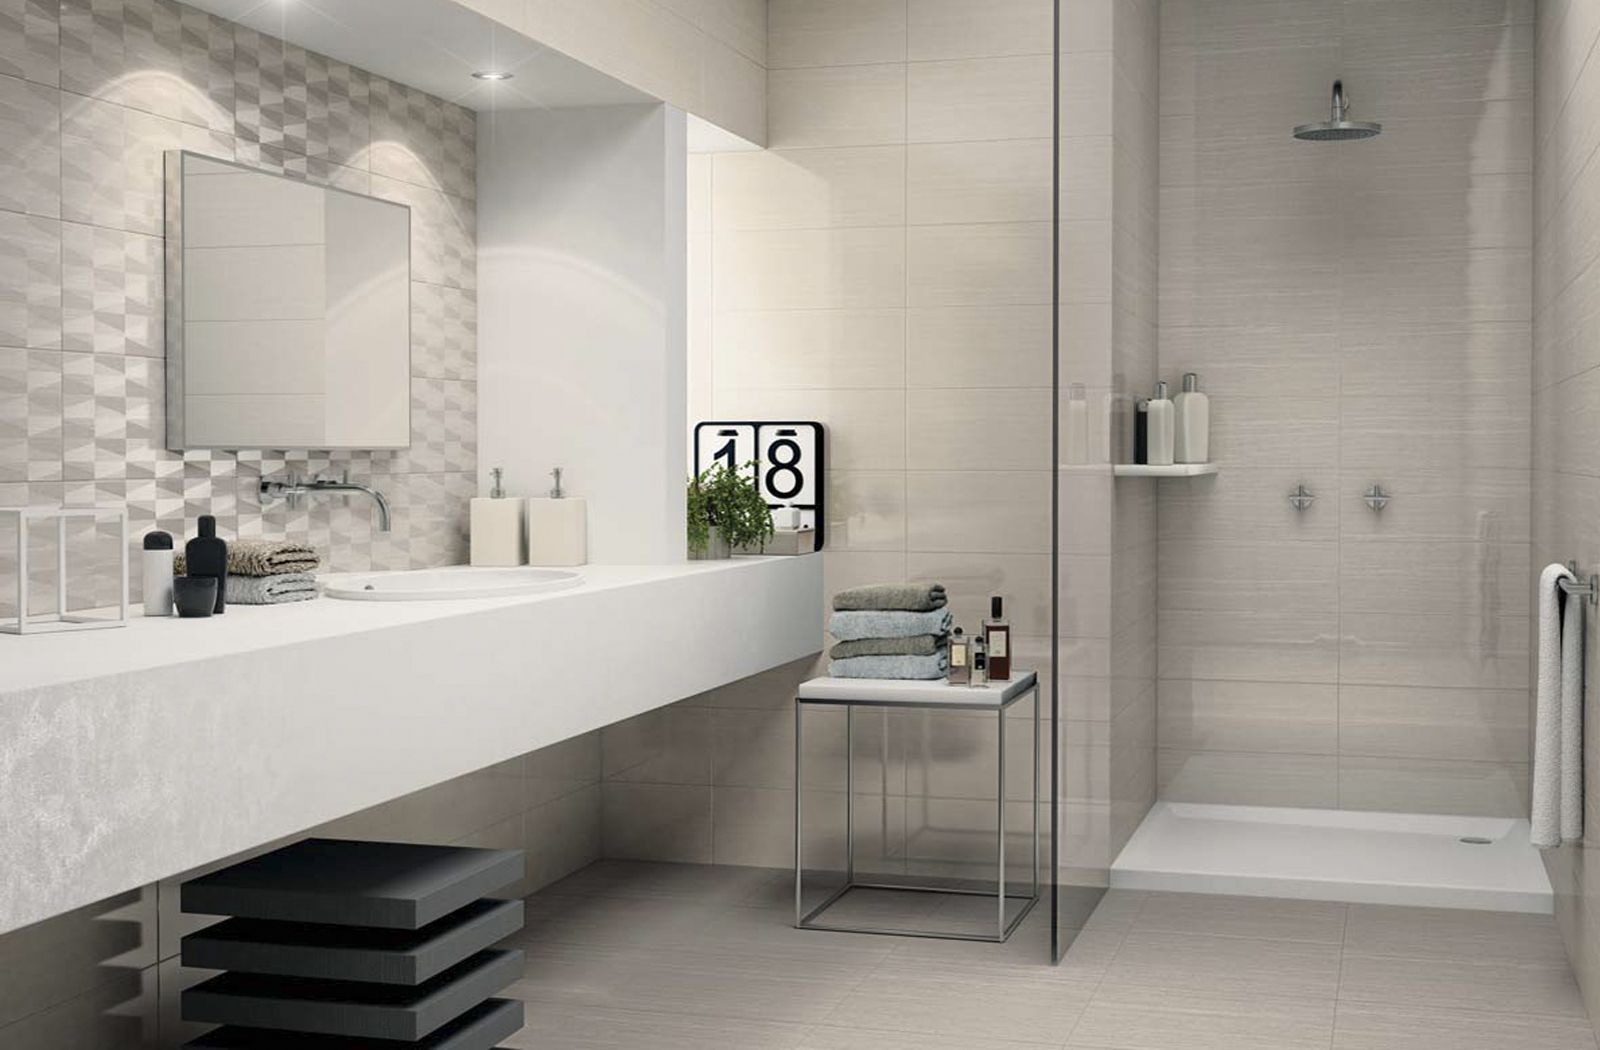 Awesome Websites Classic elegant bathroom design decor with Sign tile collection from Atlas Concorde